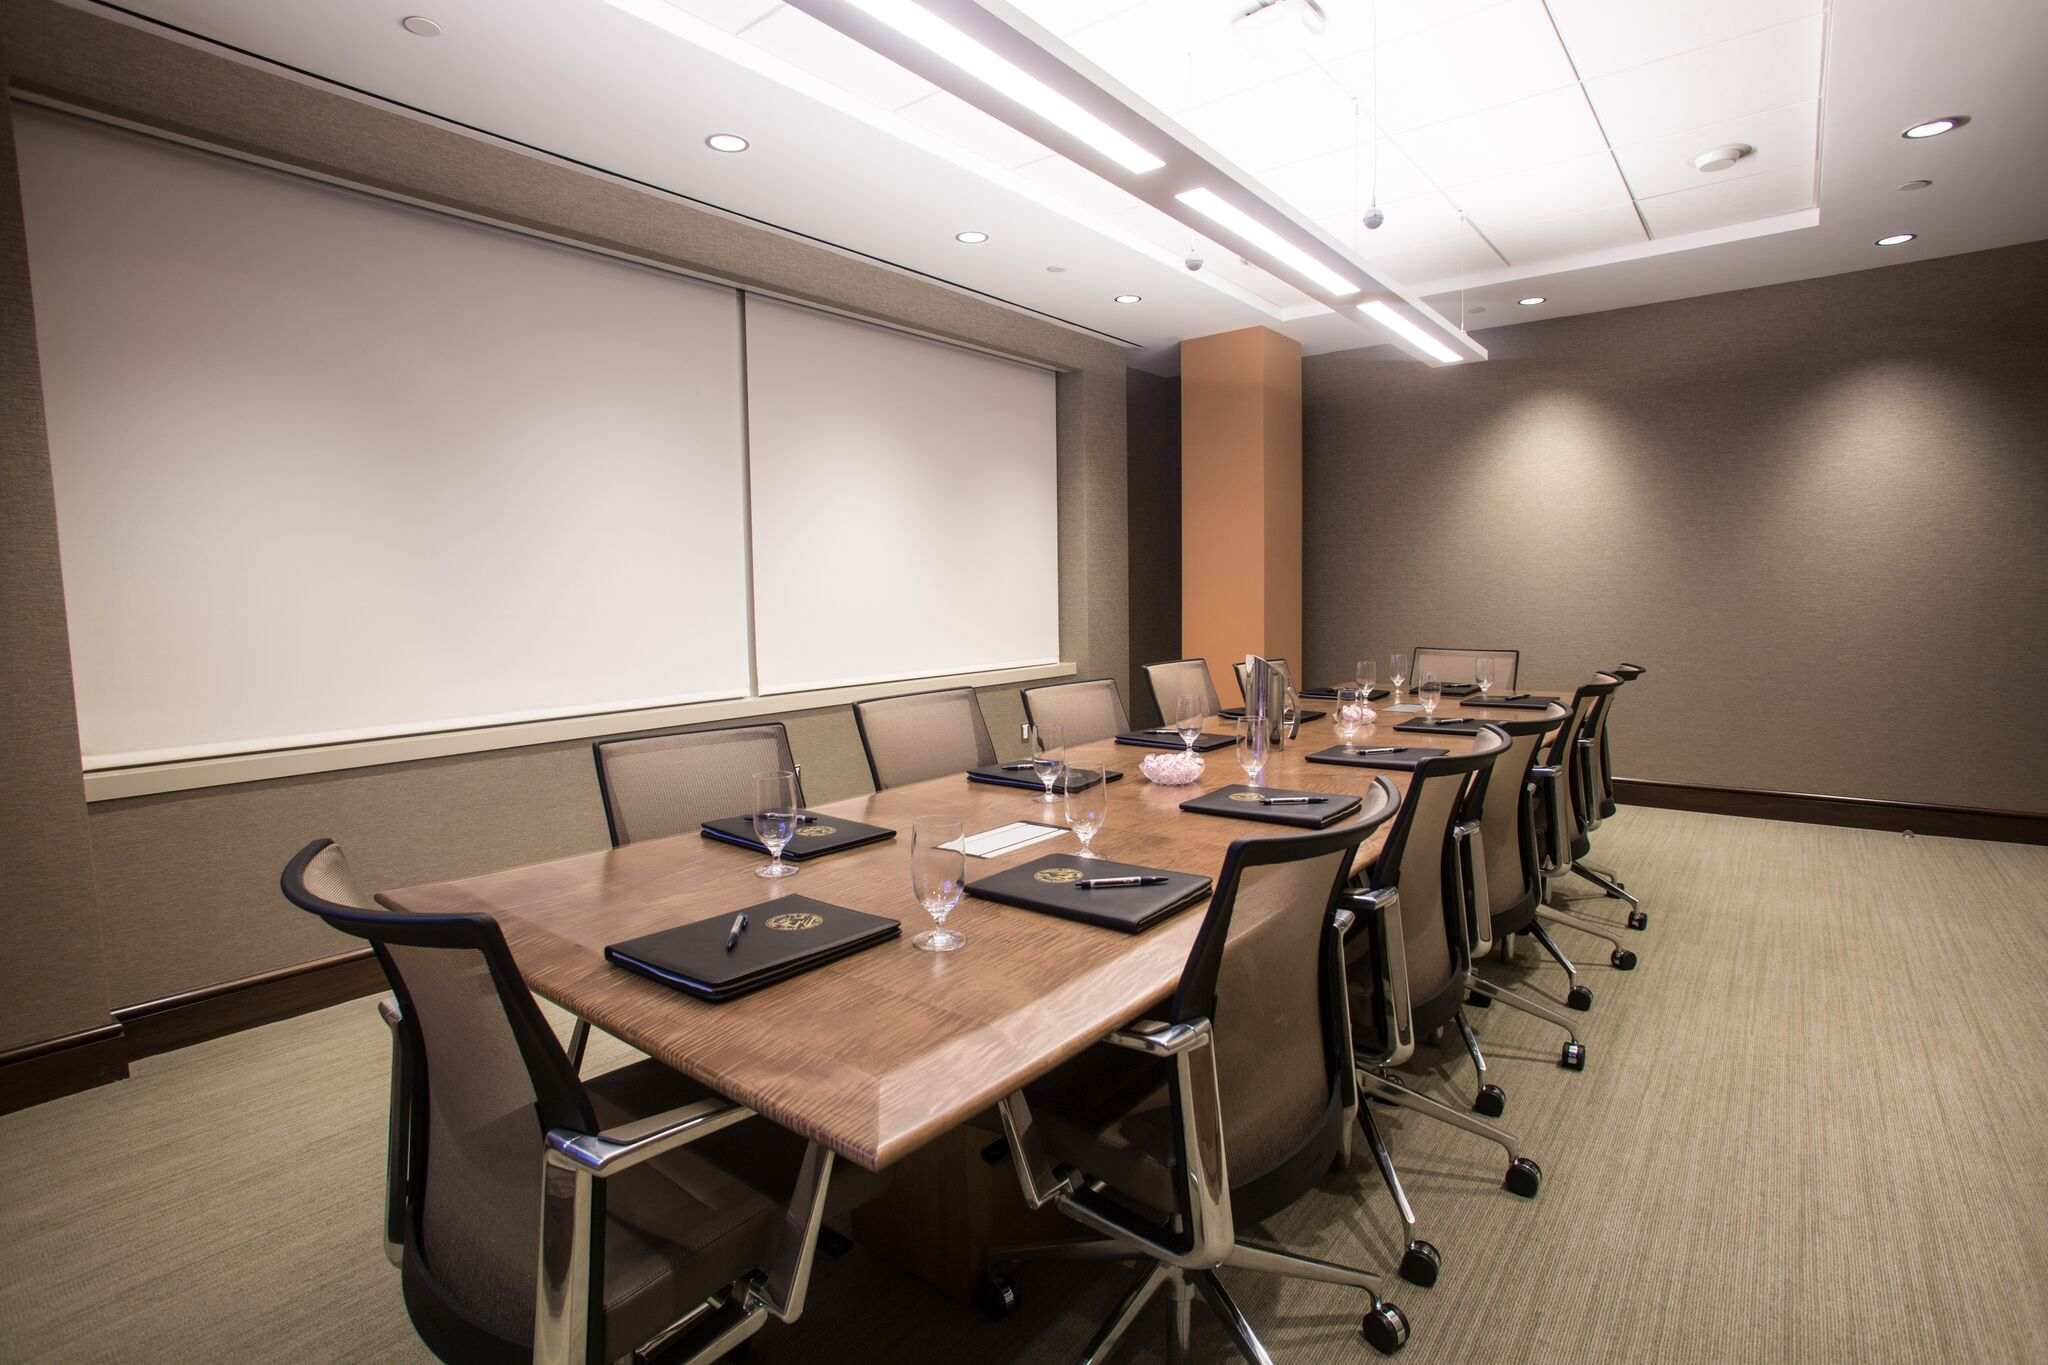 Photo #4 Executive Boardroom (113) at AUSA Conference Center